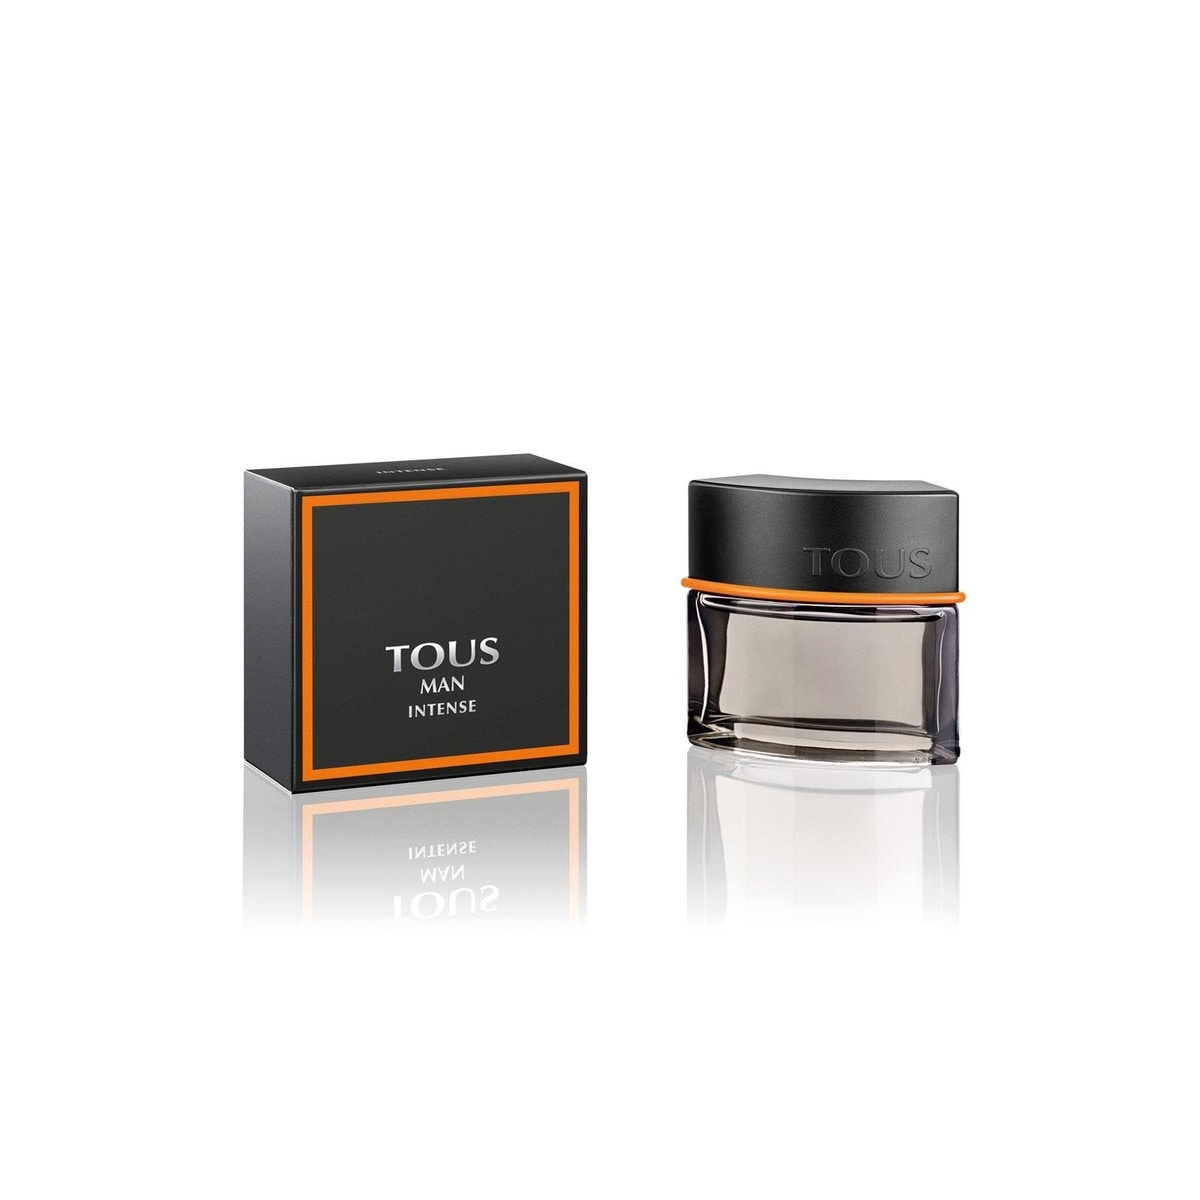 TOUS Man Intense Fragrance